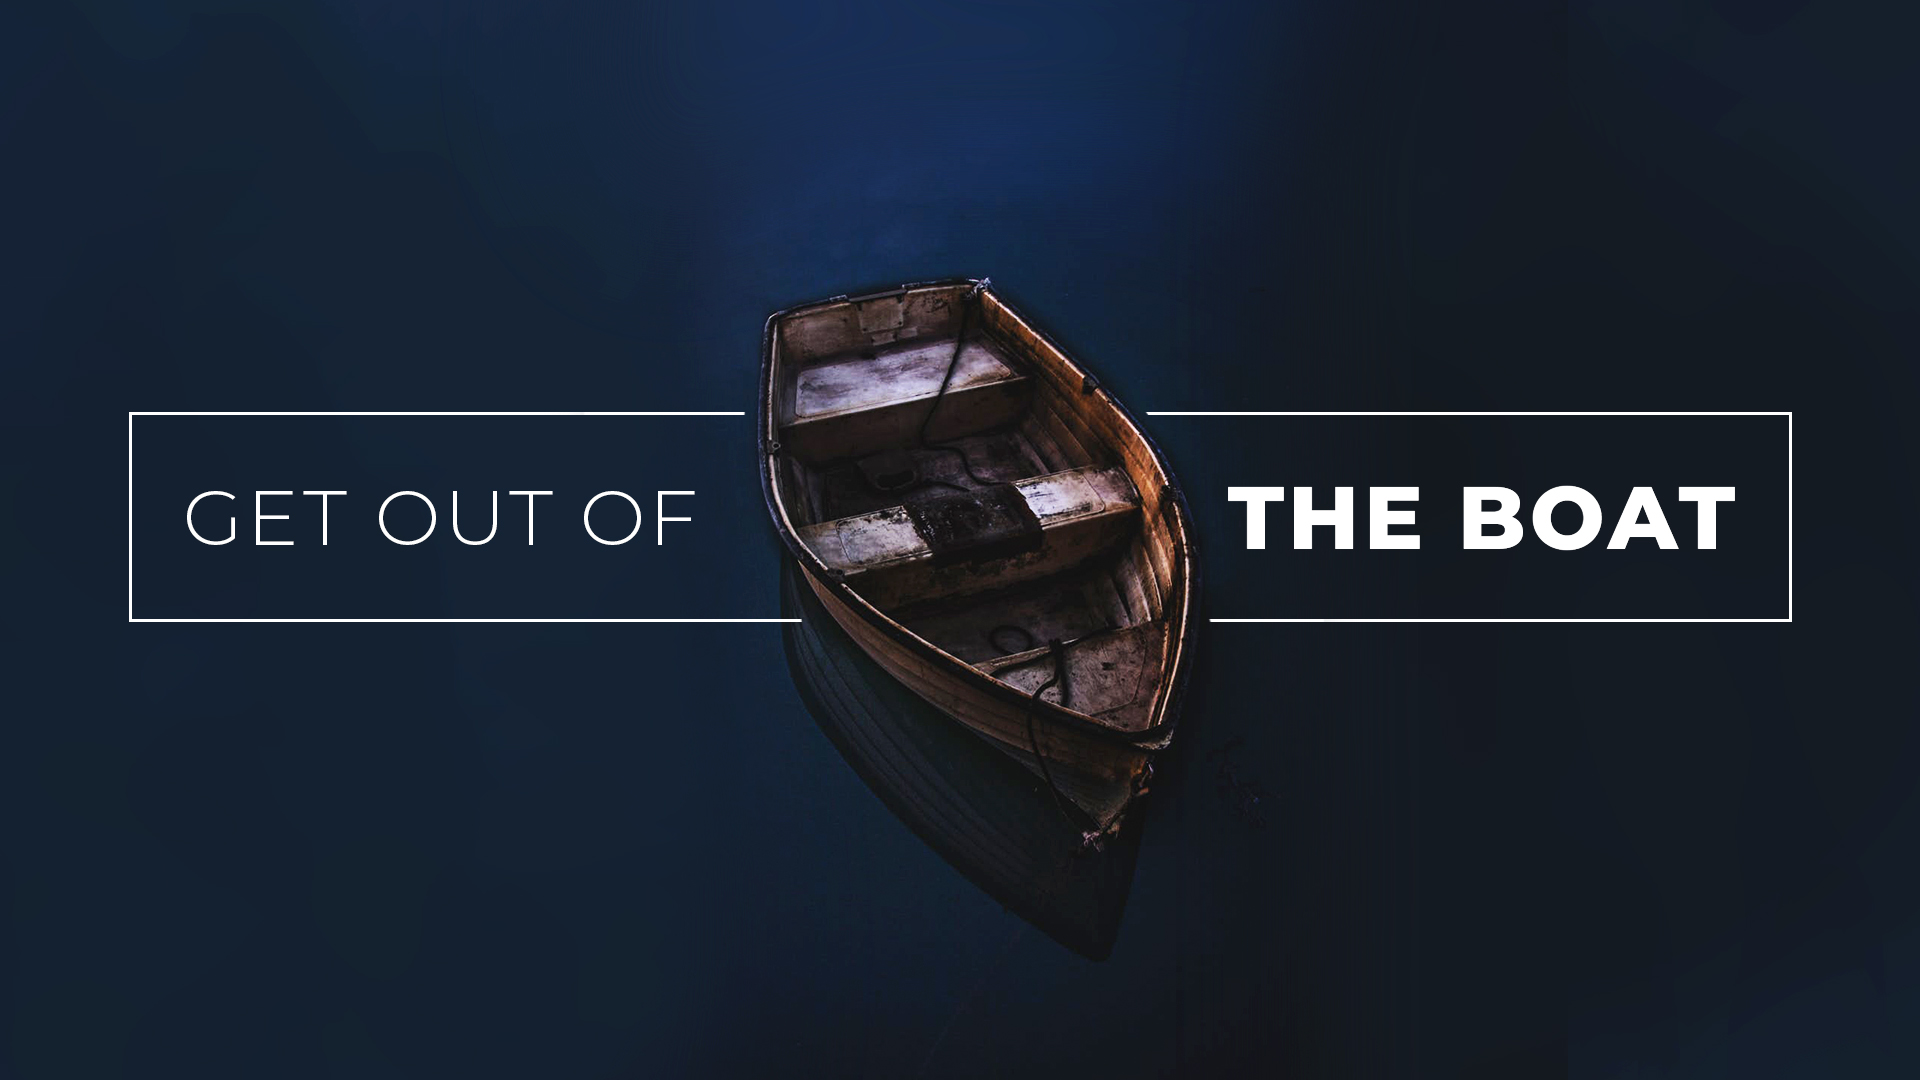 Get Out of the Boat: Why Do We Stay in the Boat?